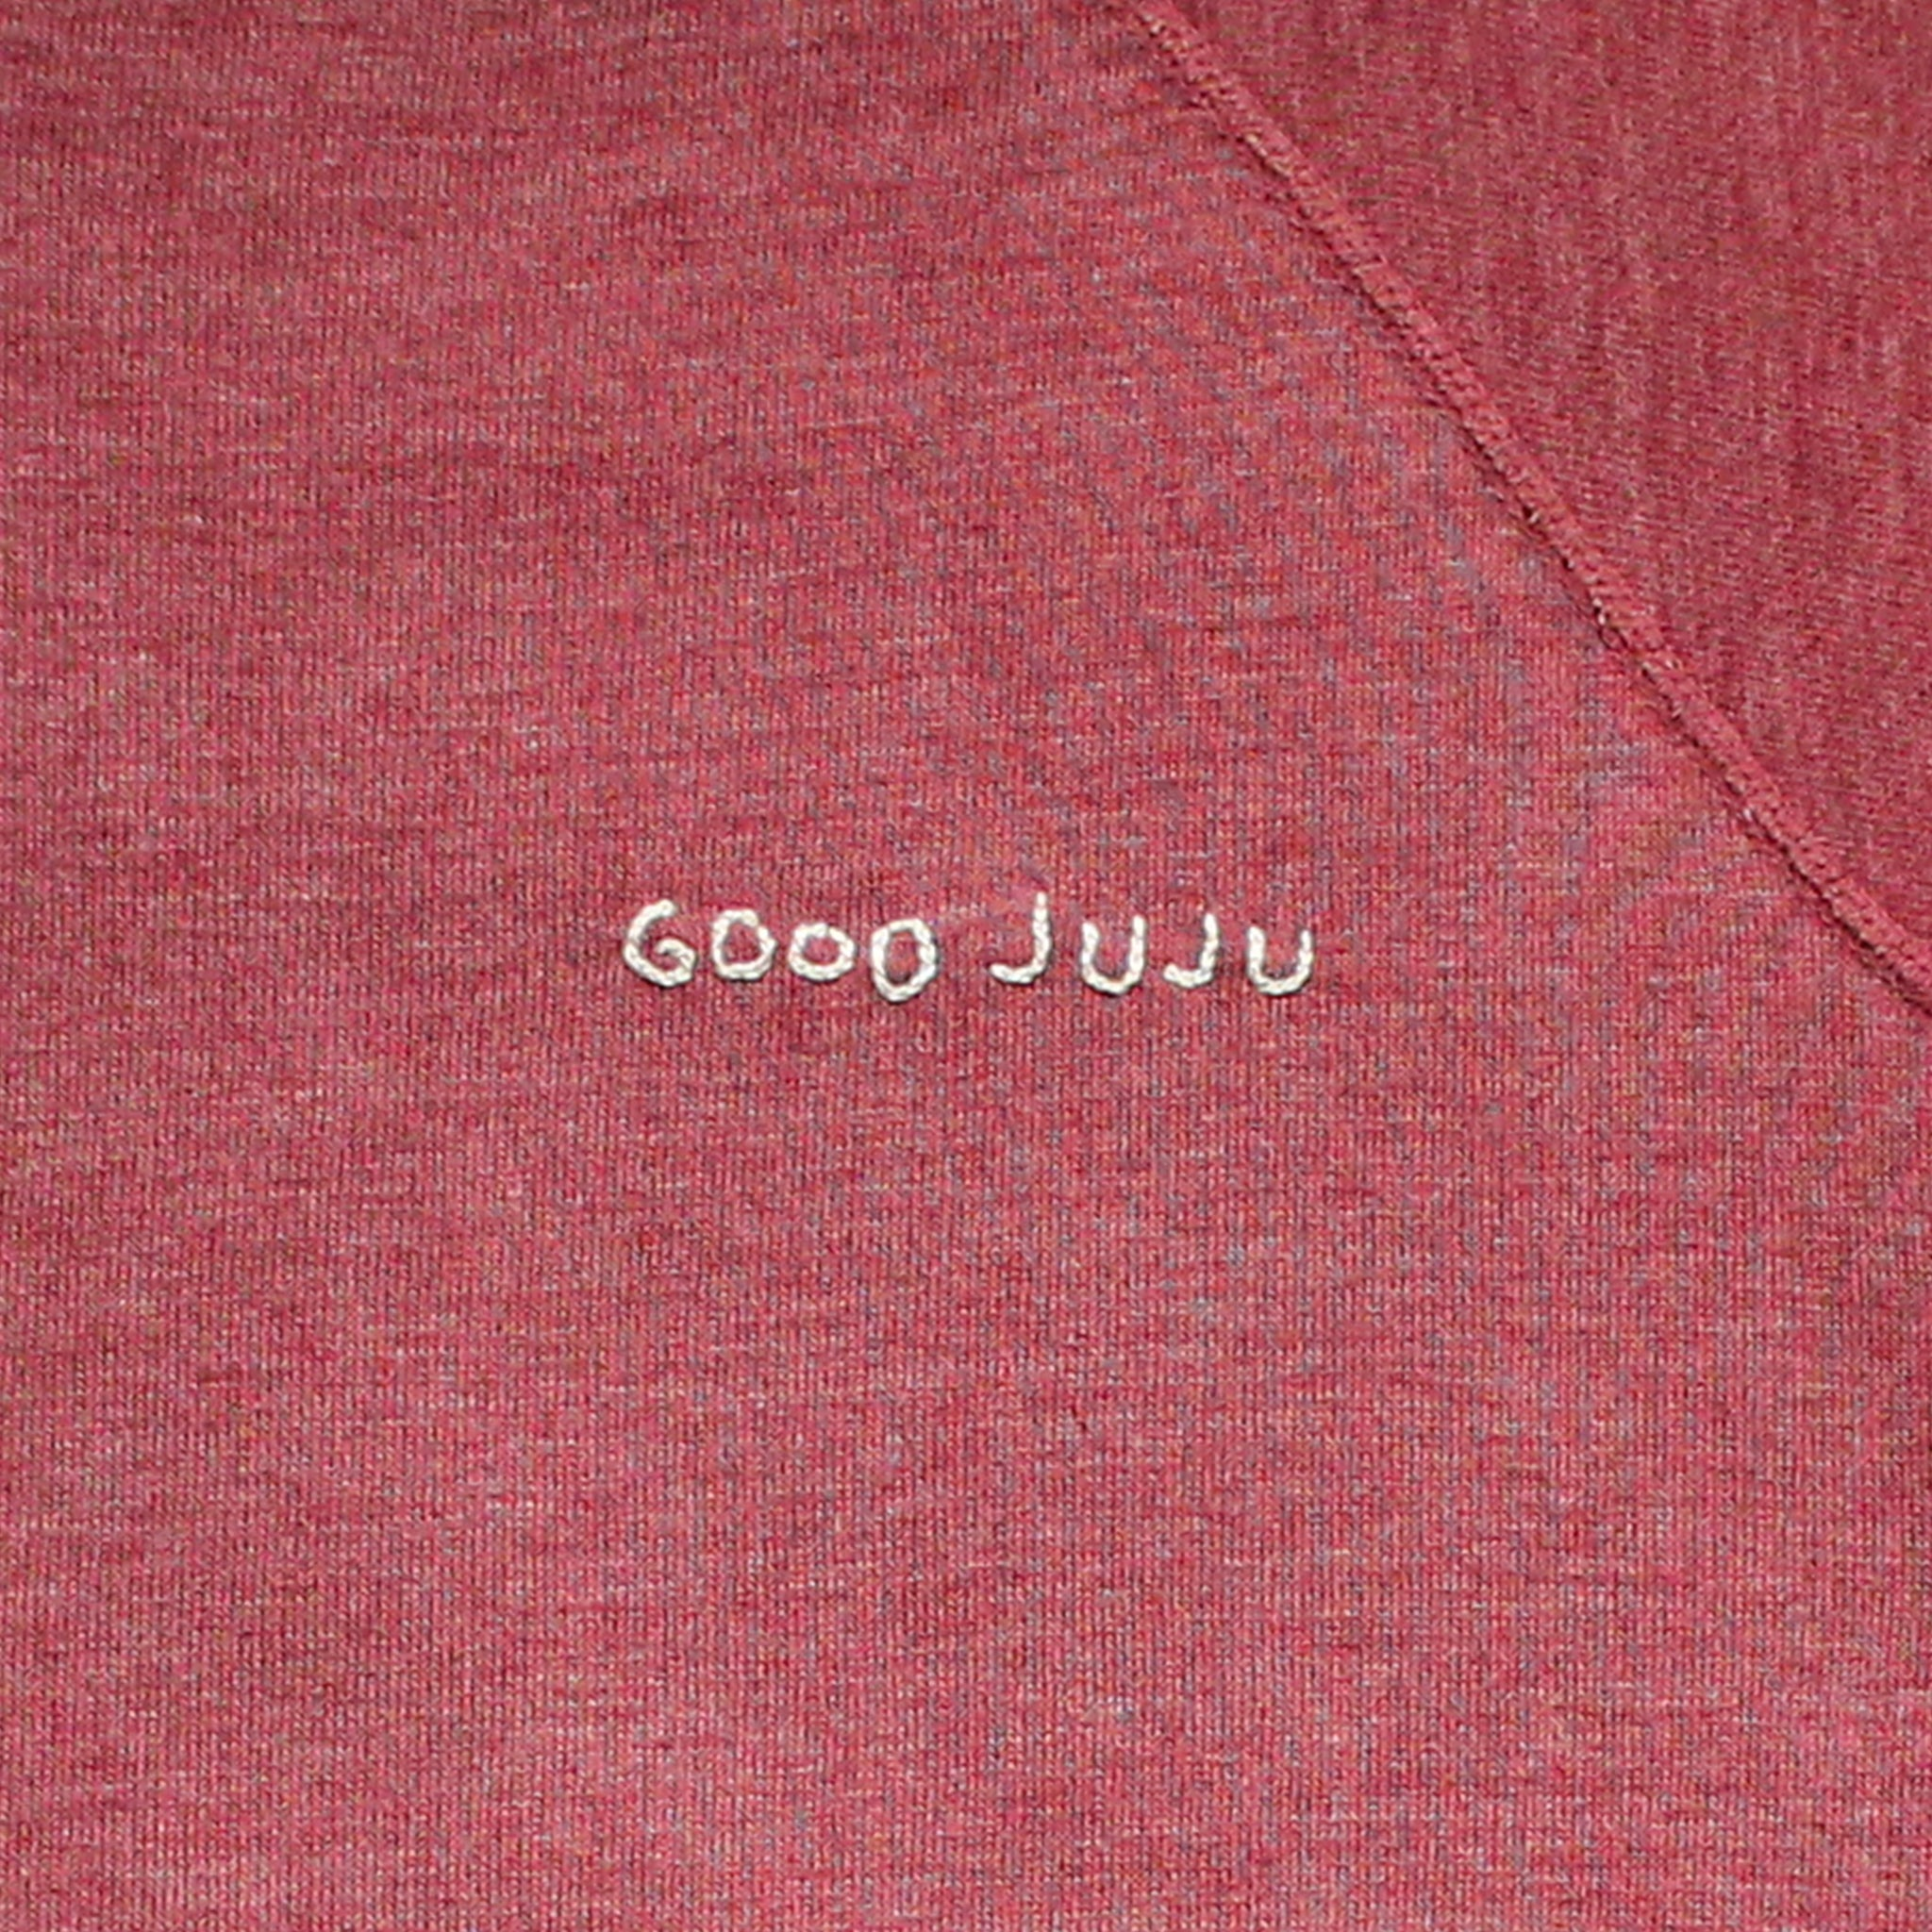 GOOD JUJU SWEATSHIRT